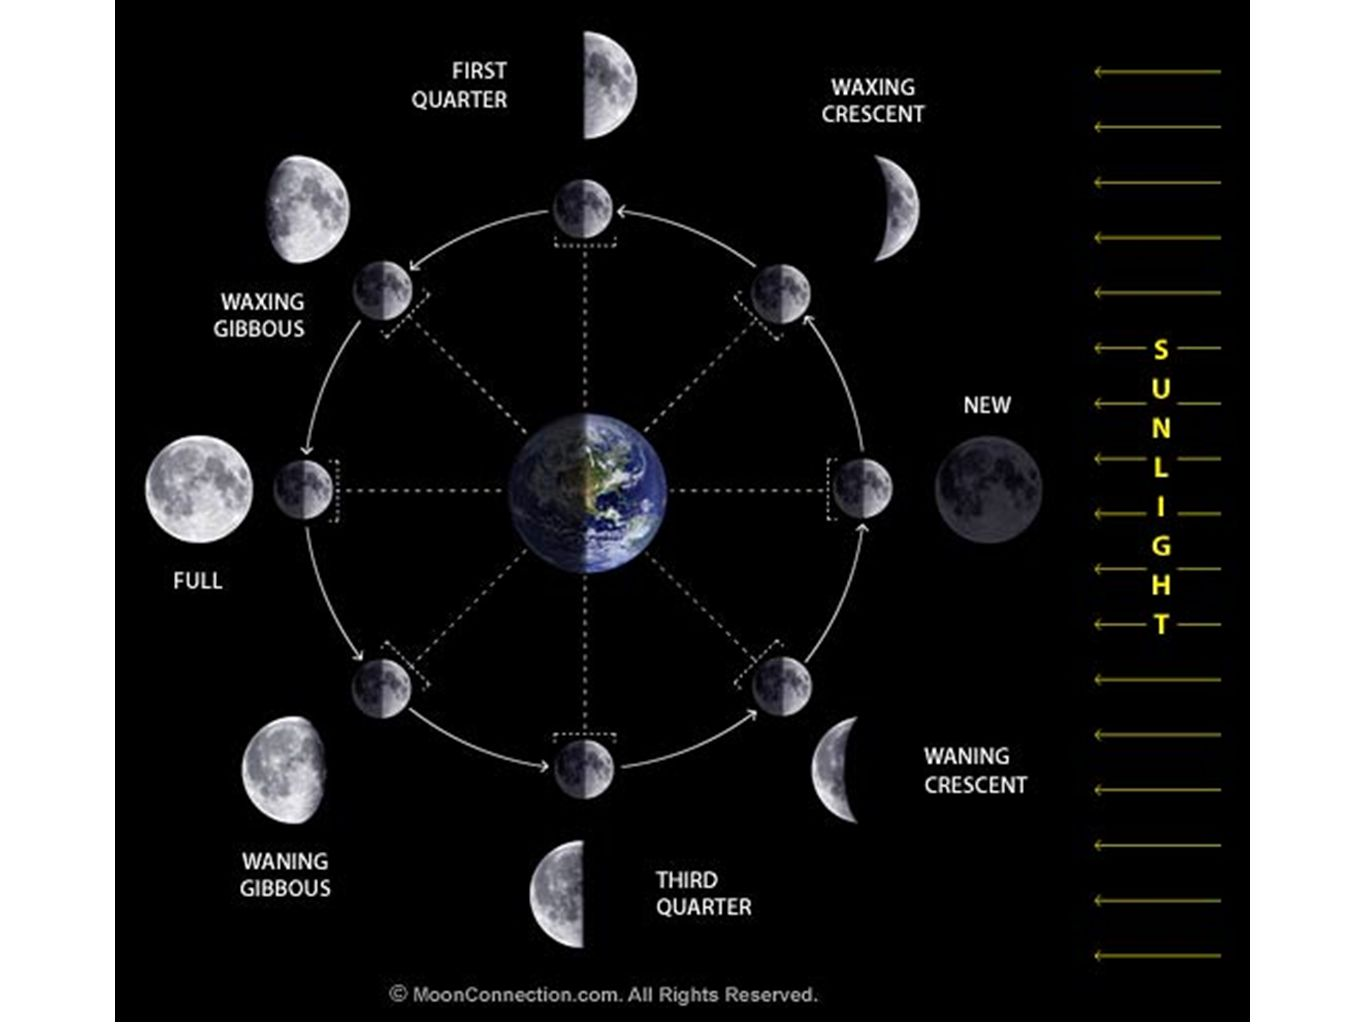 Phases eclipses and tides notes lunar motions our moons name 11 eclipses eclipse to cover up when lunas shadow hits earth or earths shadow hits luna an eclipse occurs a solar eclipse occurs when the moon passes pooptronica Choice Image